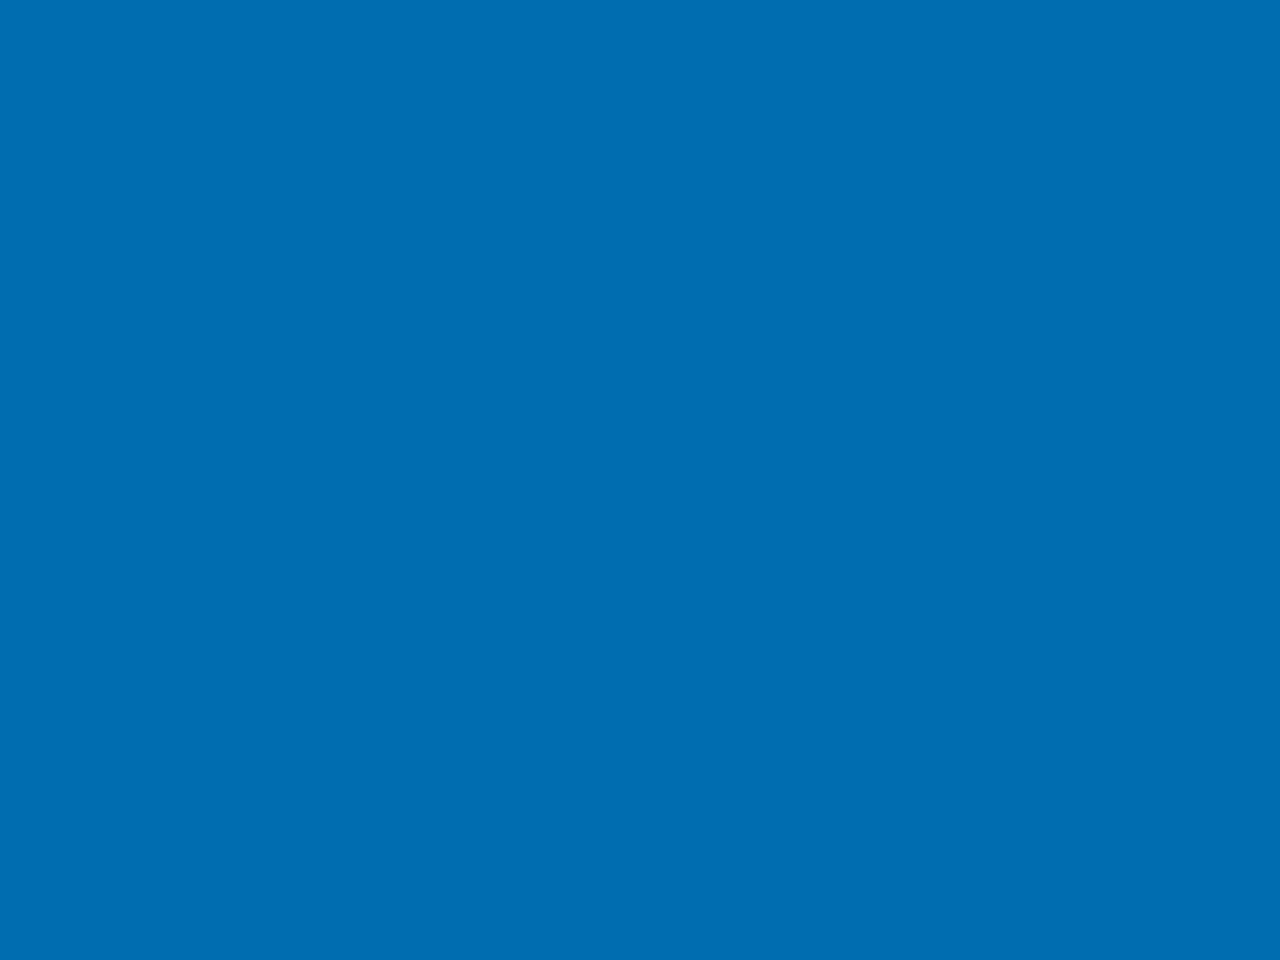 1280x960 Honolulu Blue Solid Color Background